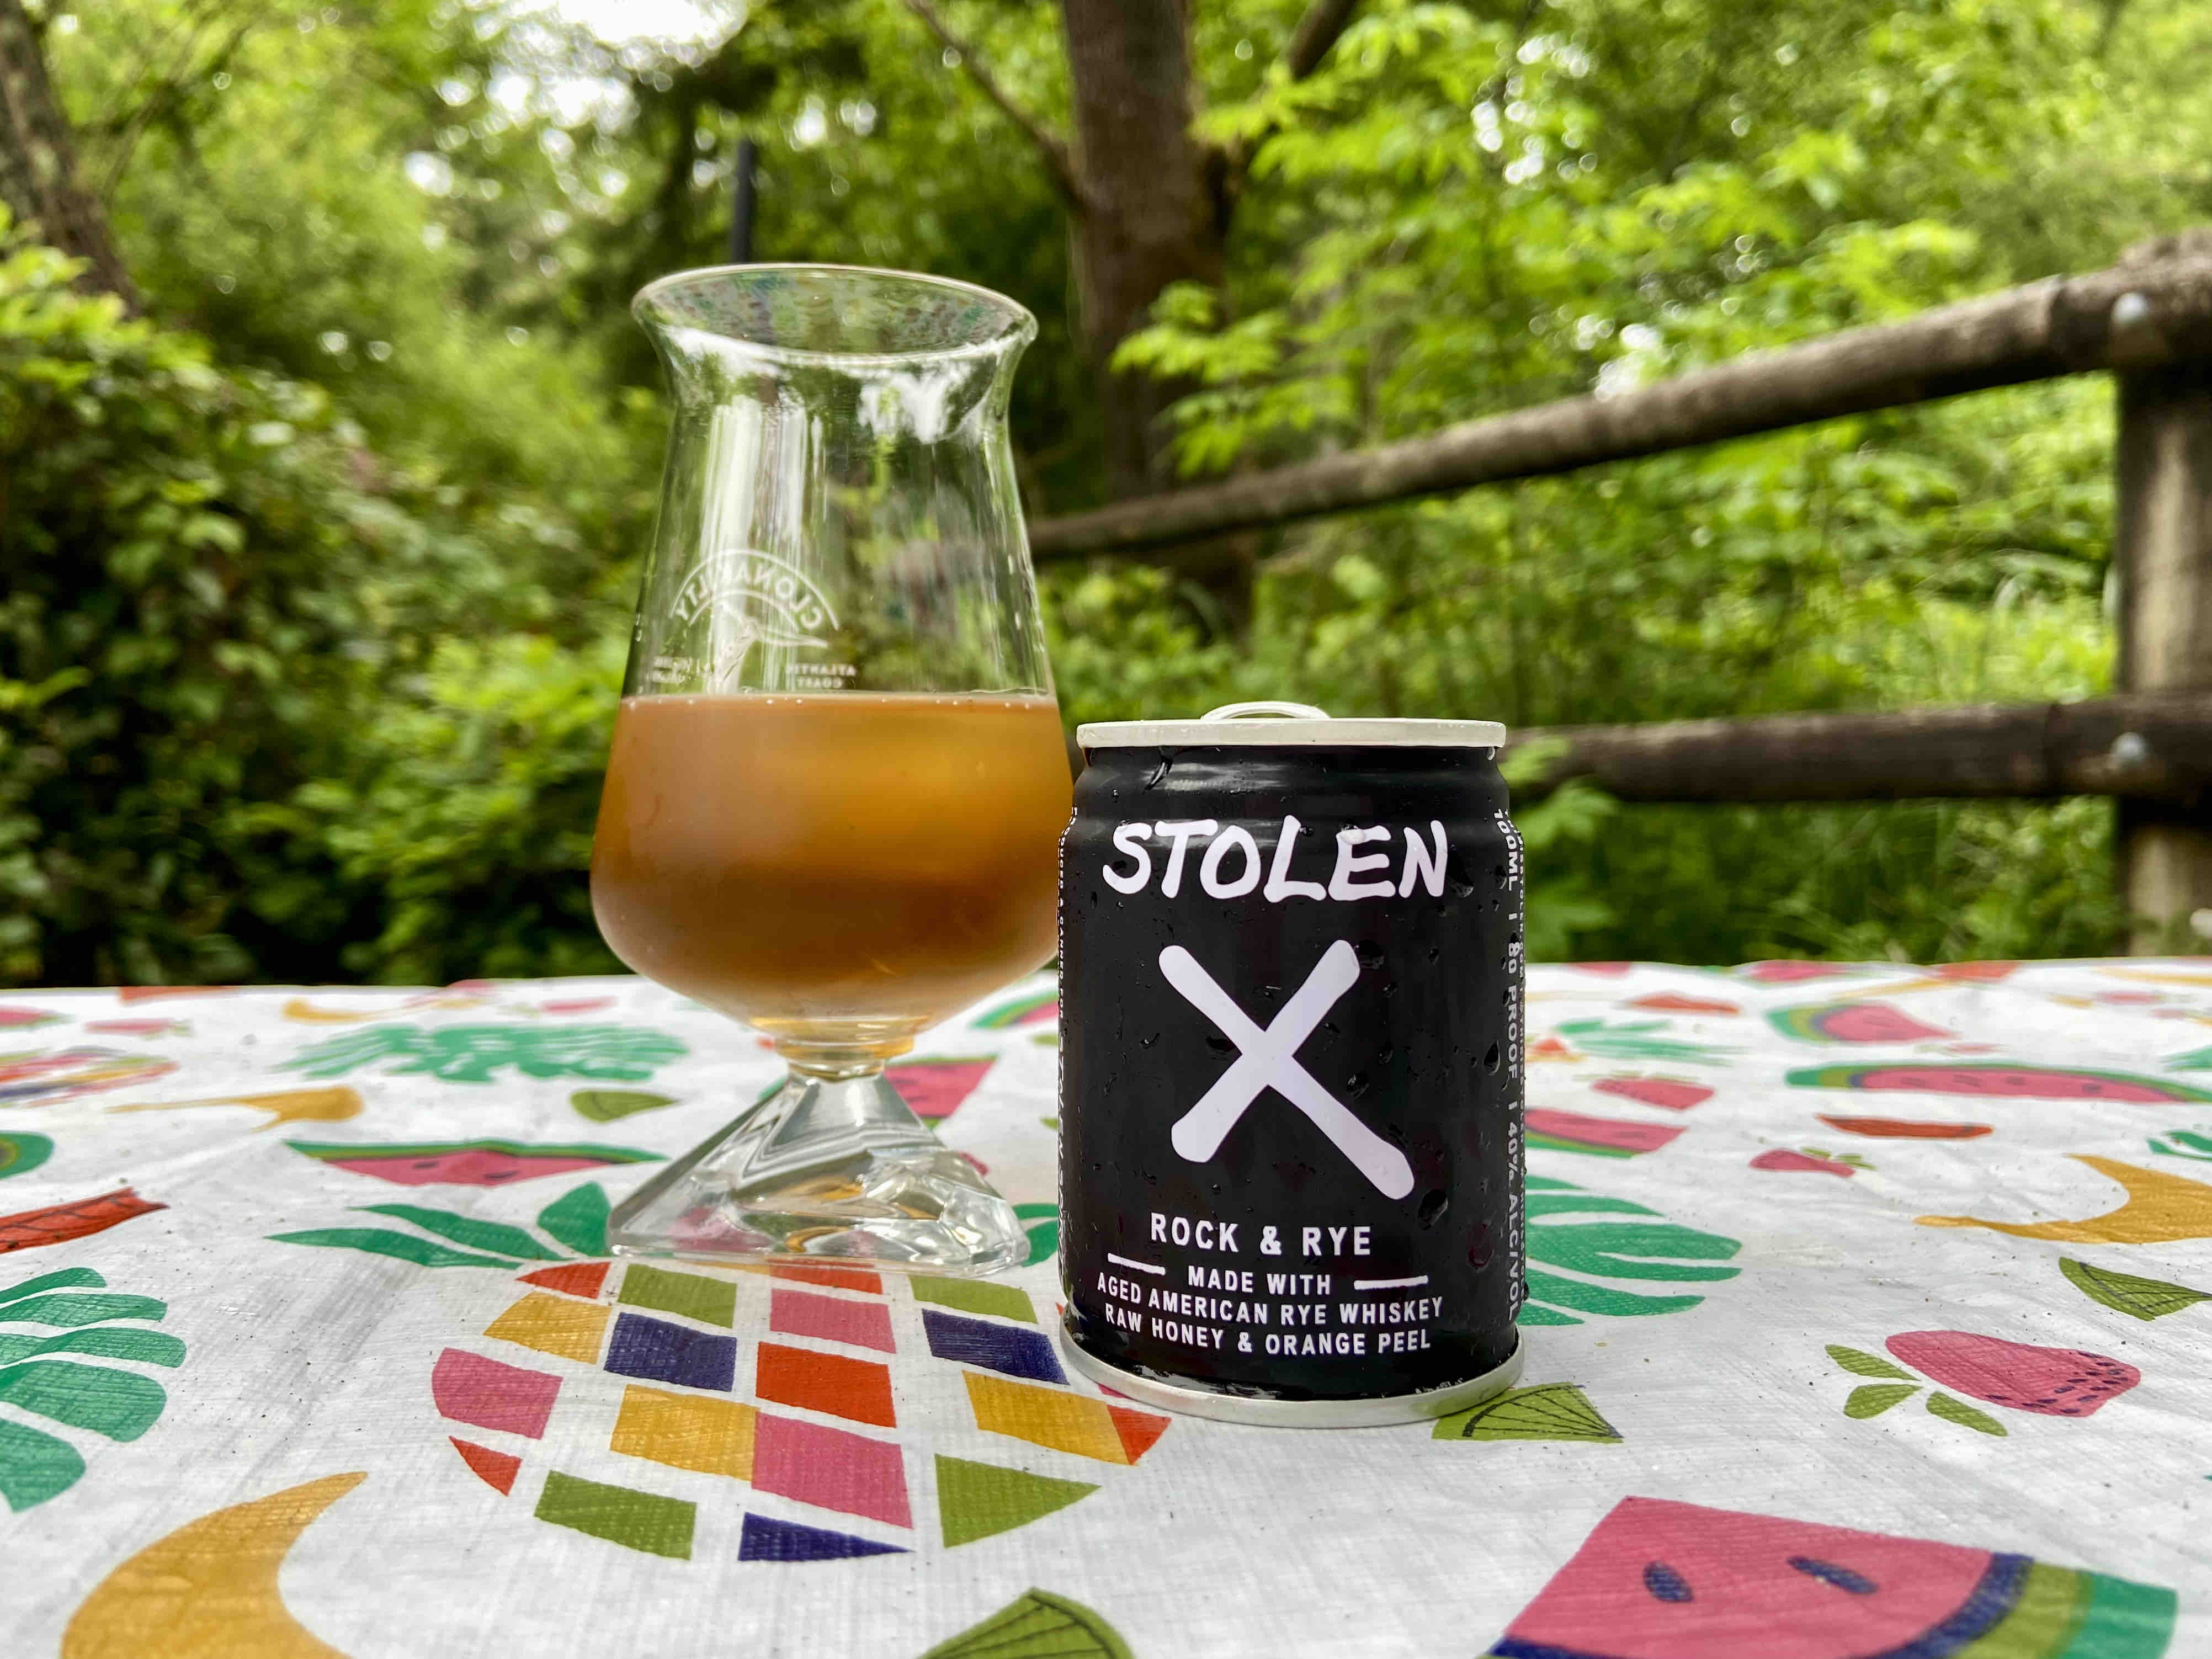 A pour of Stolen X Rock & Rye from a 100mL can.